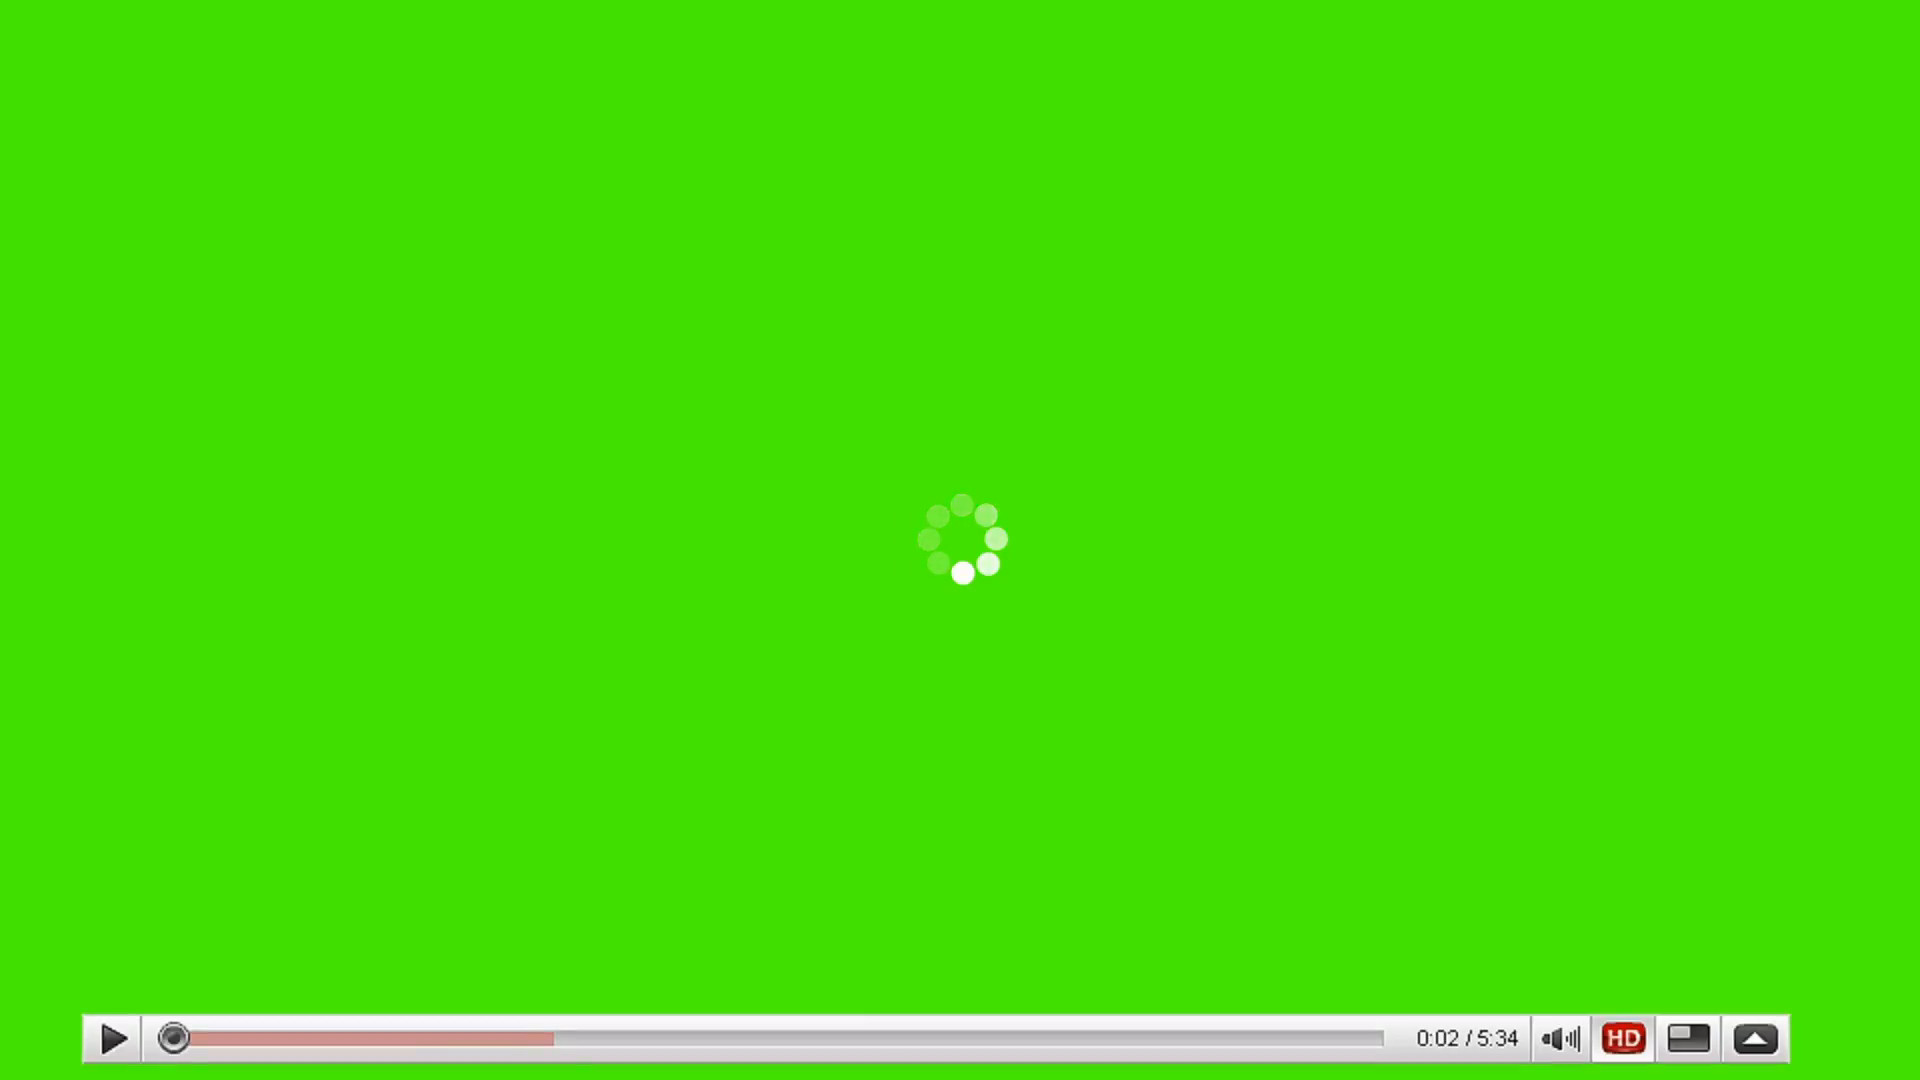 Res: 1920x1080, Movie Player Loading Video on a Green Screen Background Motion Background - Videoblocks